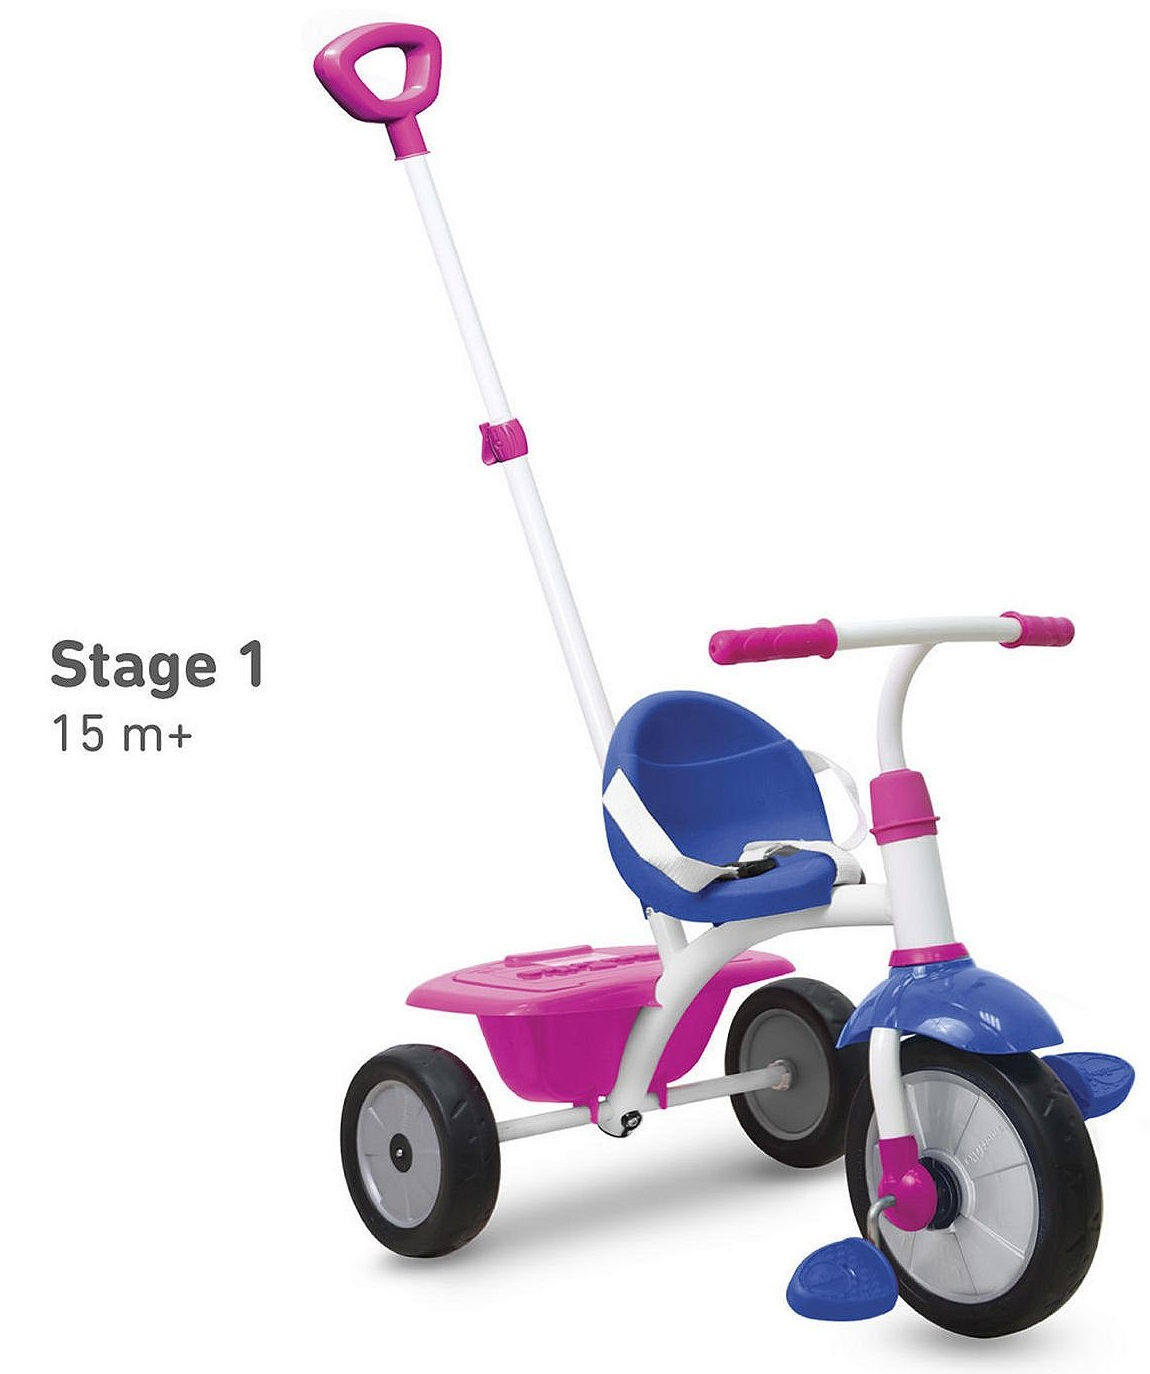 new smartrike 2 in 1 fun tricycle trike adult push along. Black Bedroom Furniture Sets. Home Design Ideas